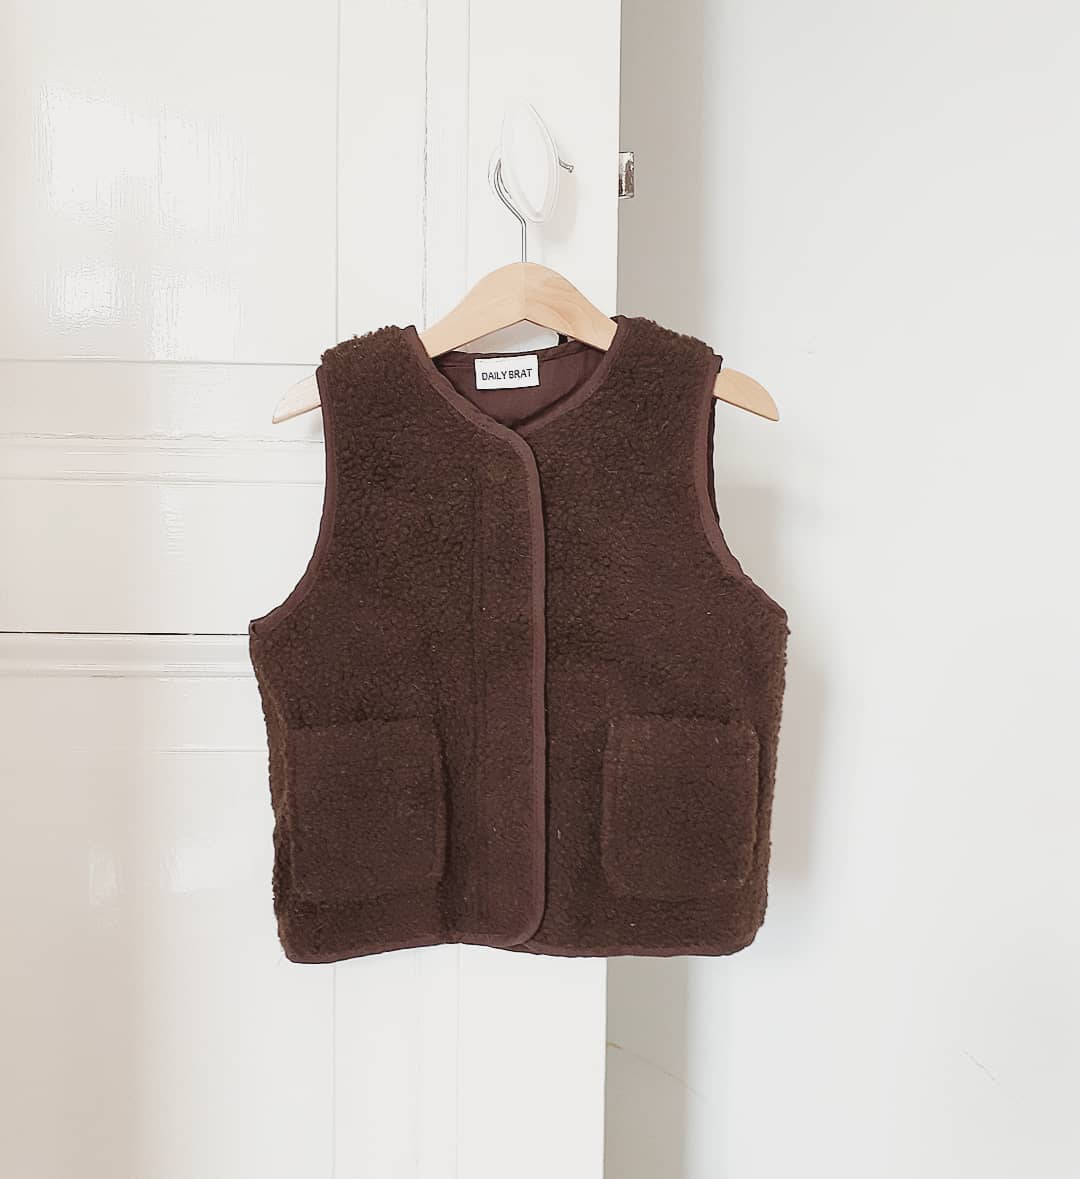 DAILY BRAT TEDDY VEST BROWN